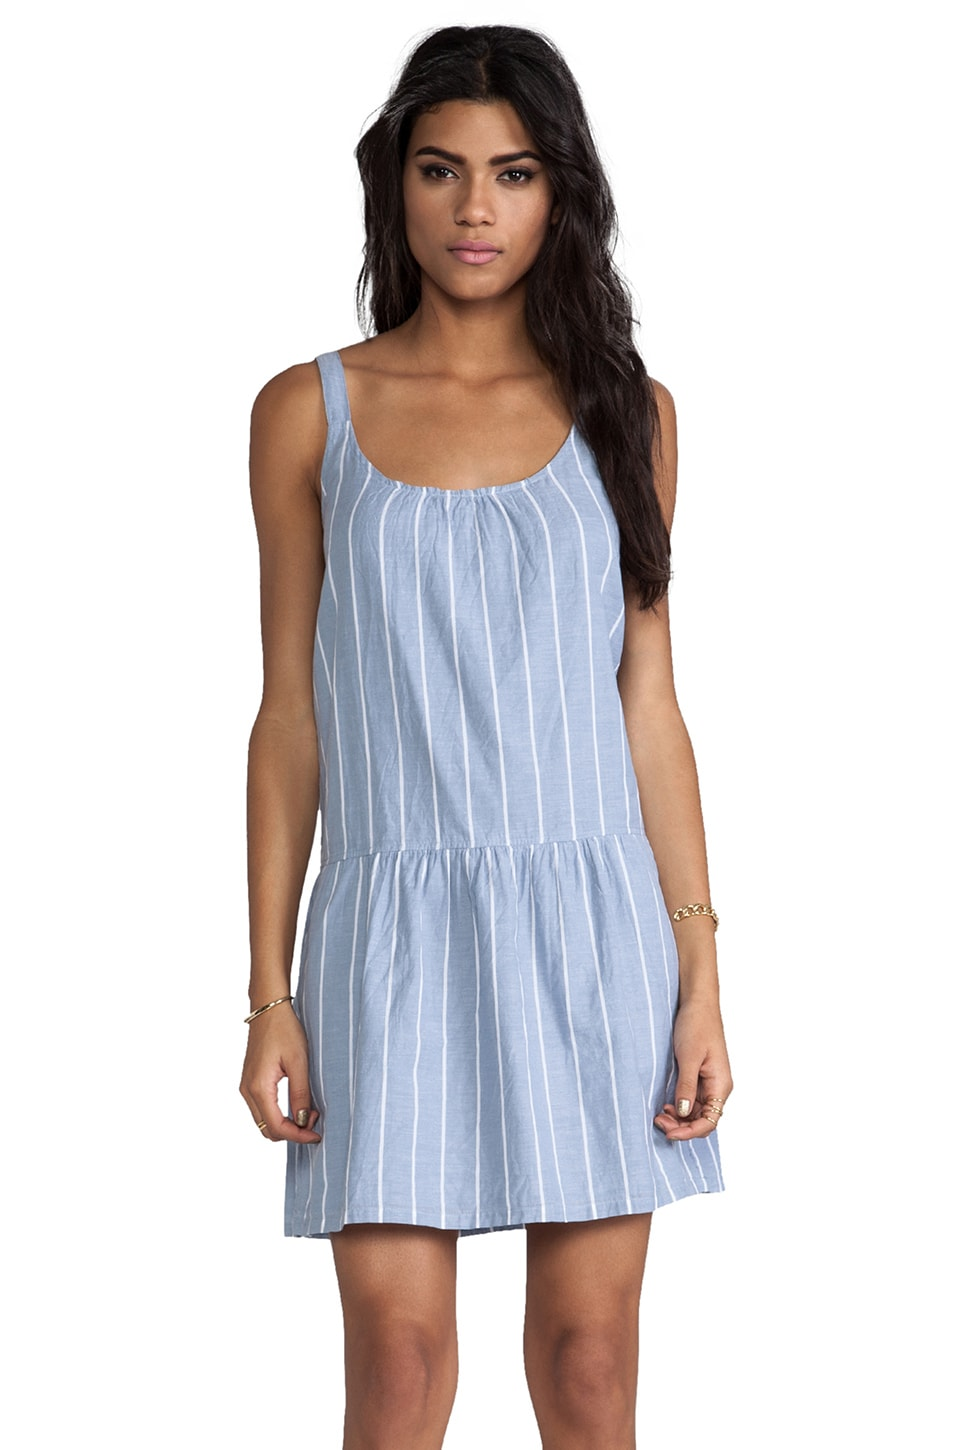 Soft Joie Pedaru Drop Waist Dress in Faded Denim & Porcelain